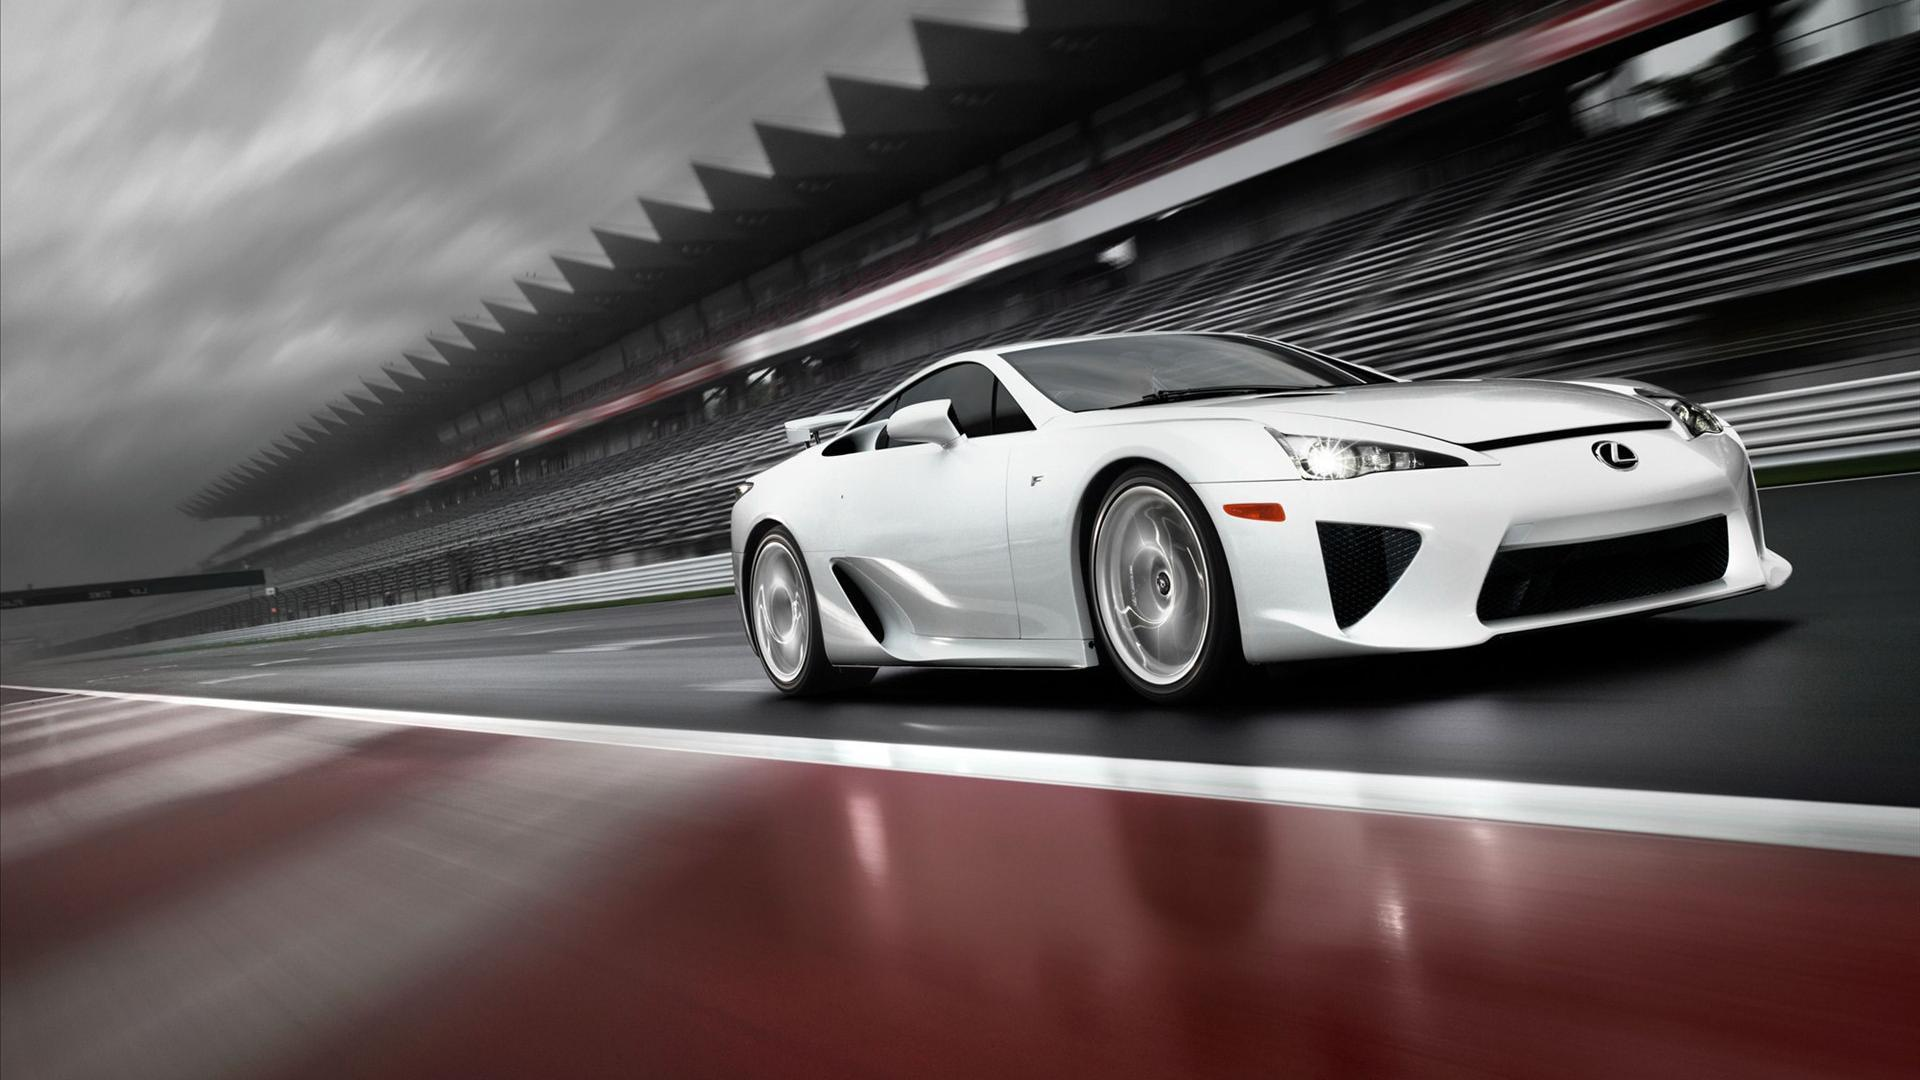 Hd Lexus Car Desktop Backgrounds Widescreen and HD background ...